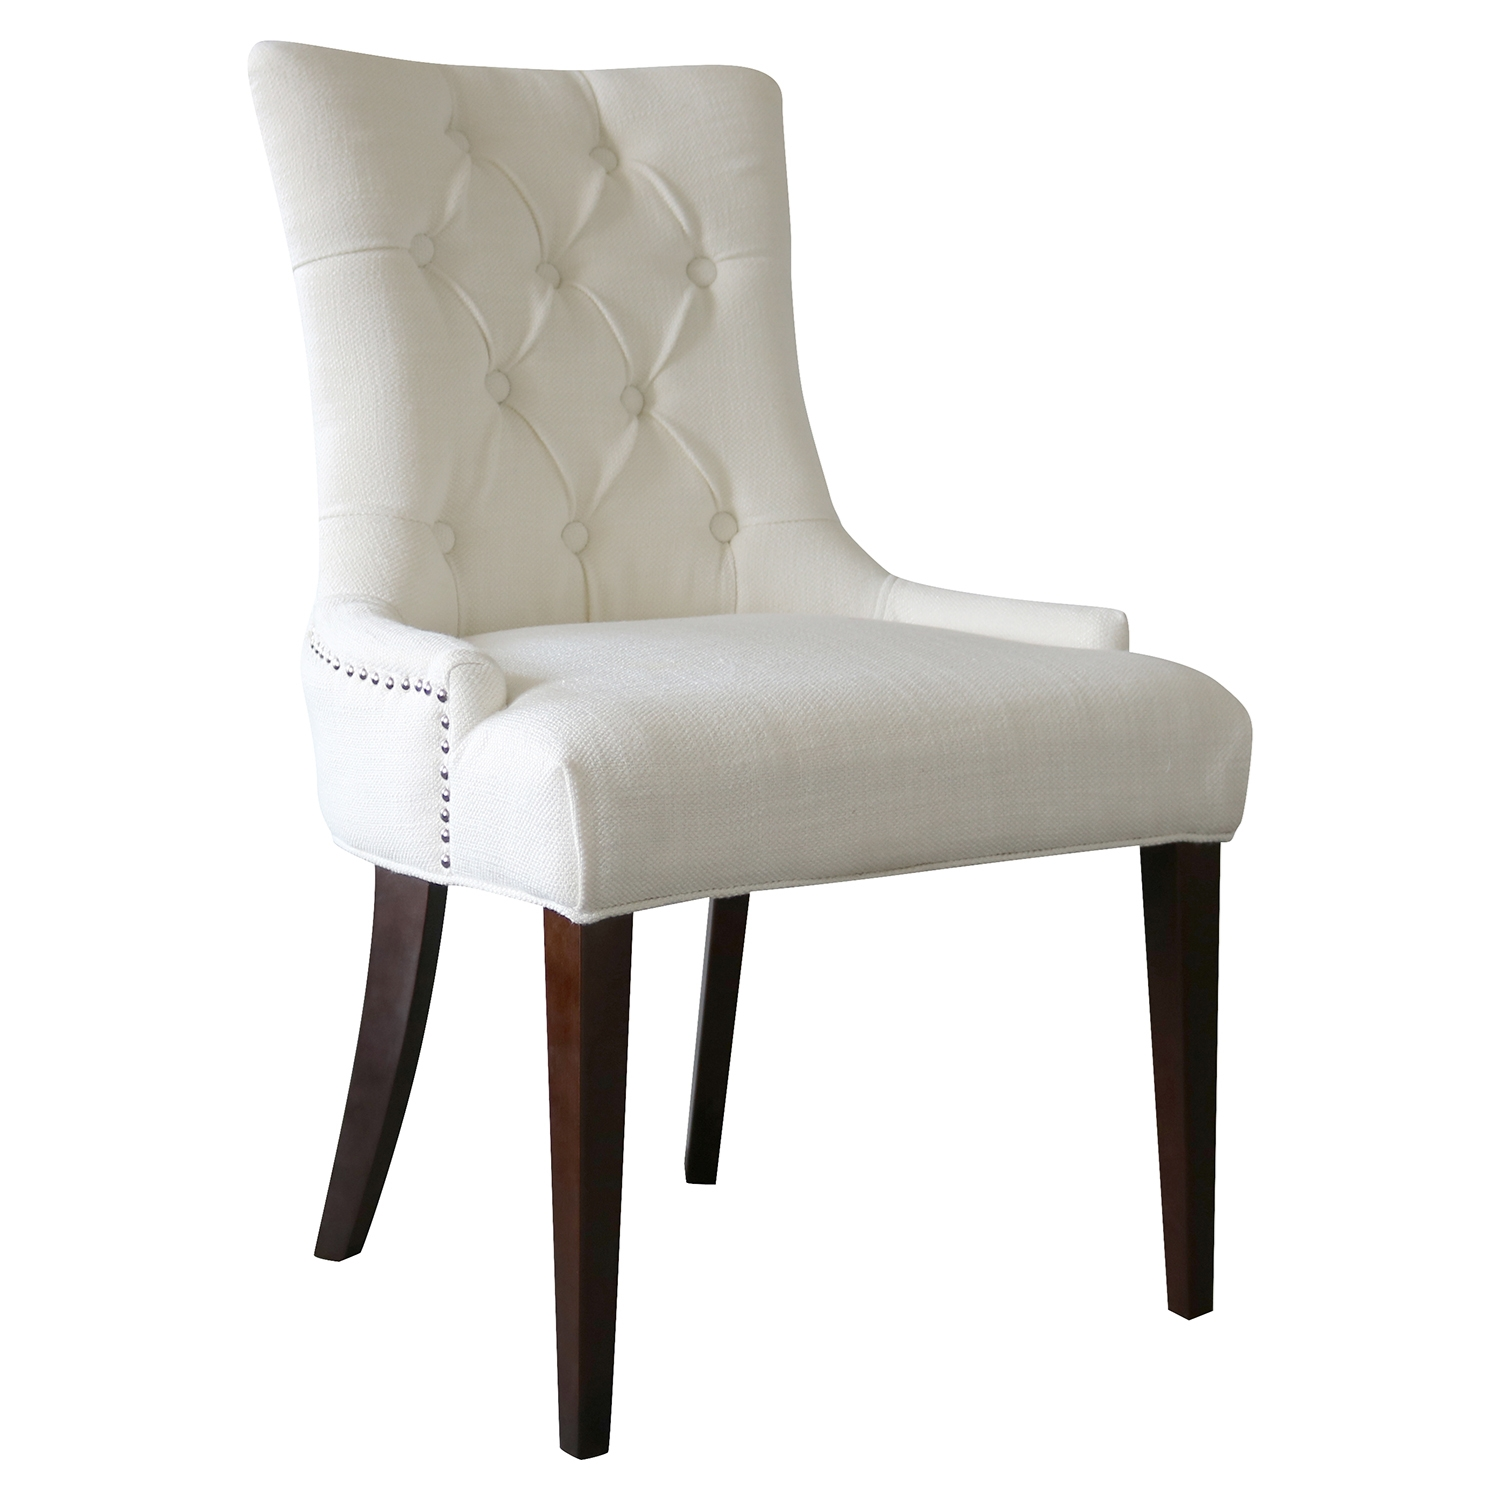 Madelyn Chair - Snow, Button Tufted - CP-200-06